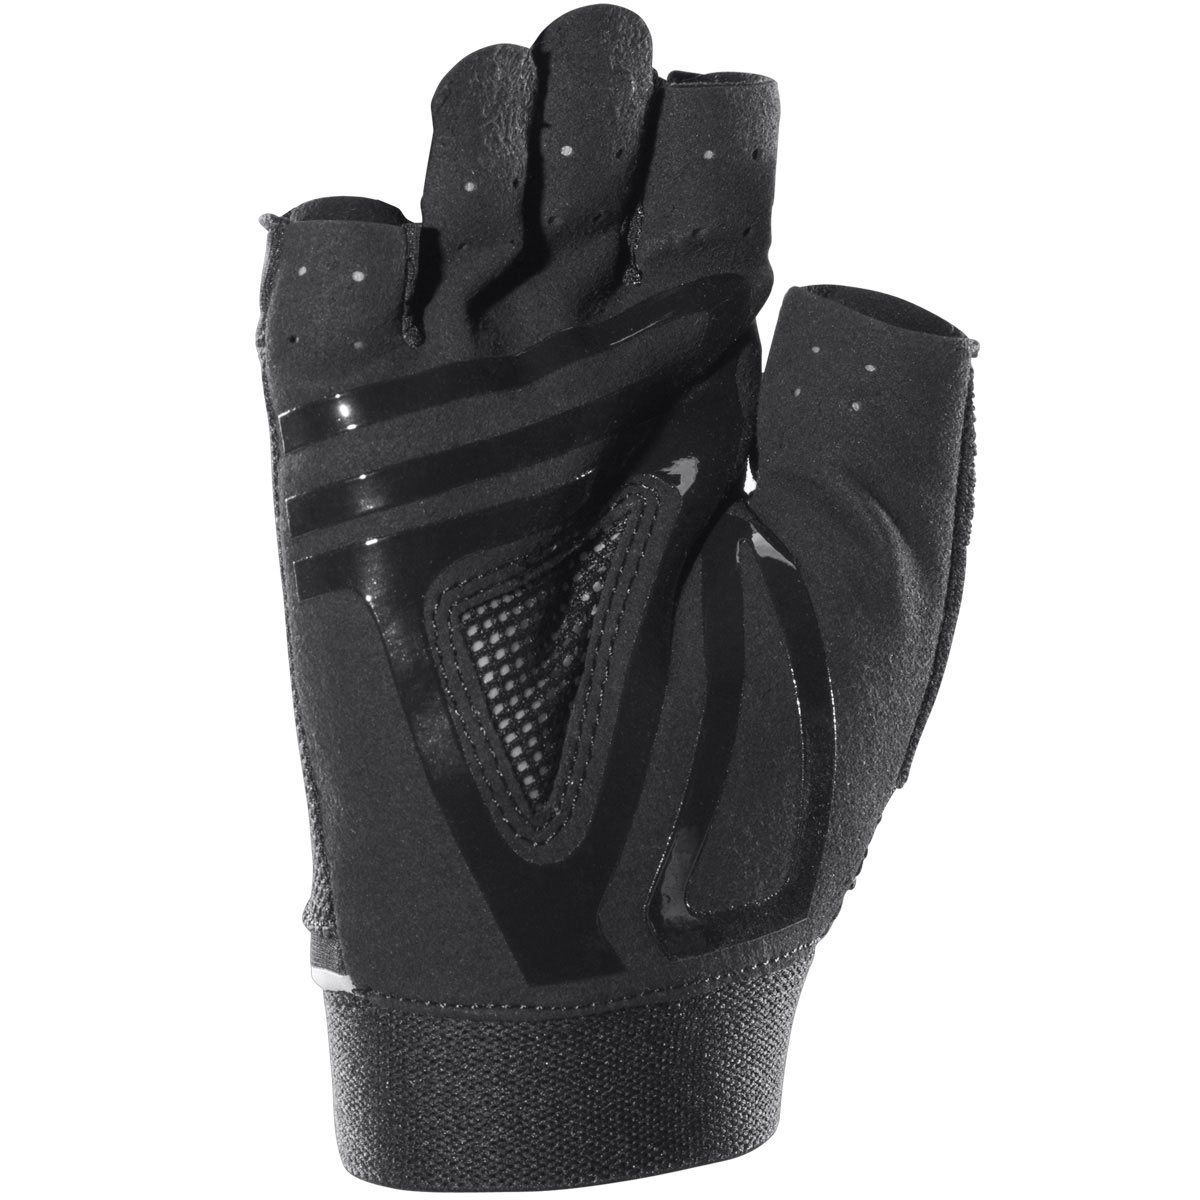 Workout Gloves Womens Nike: Under Armour Womens UA Flux Training Gloves Gym Fitness